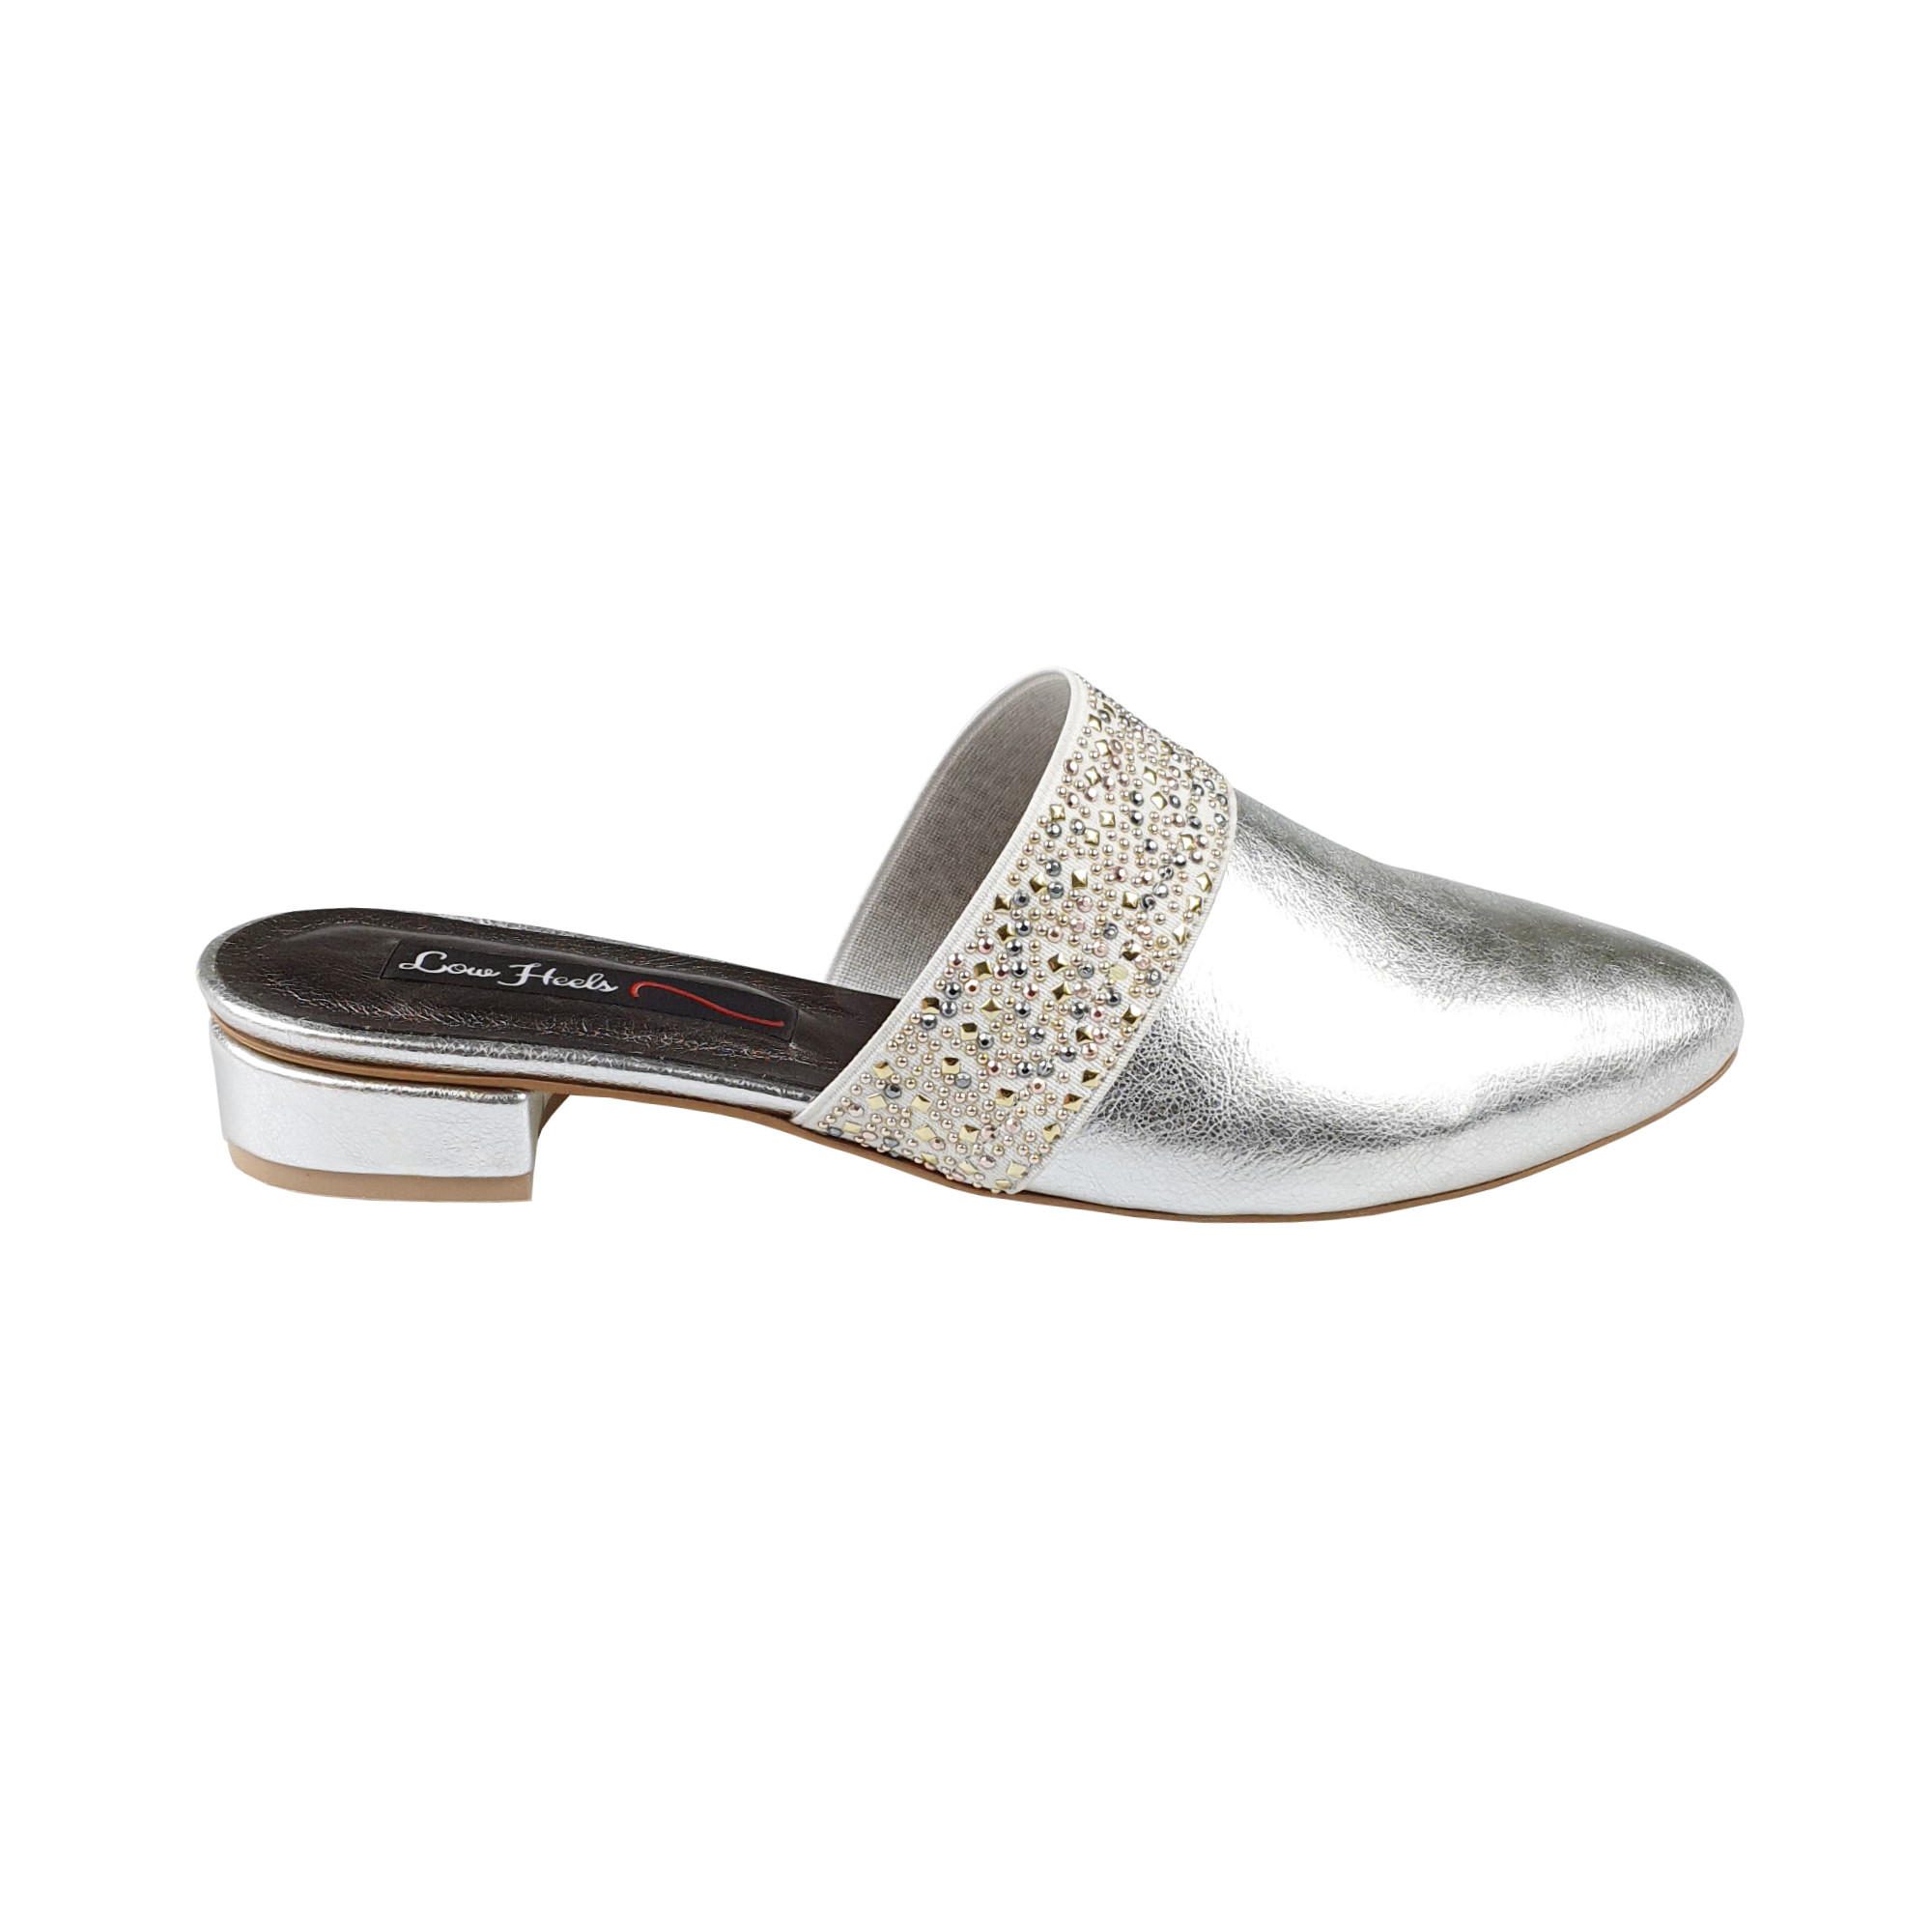 Zara mules with elastic insets in silver leather